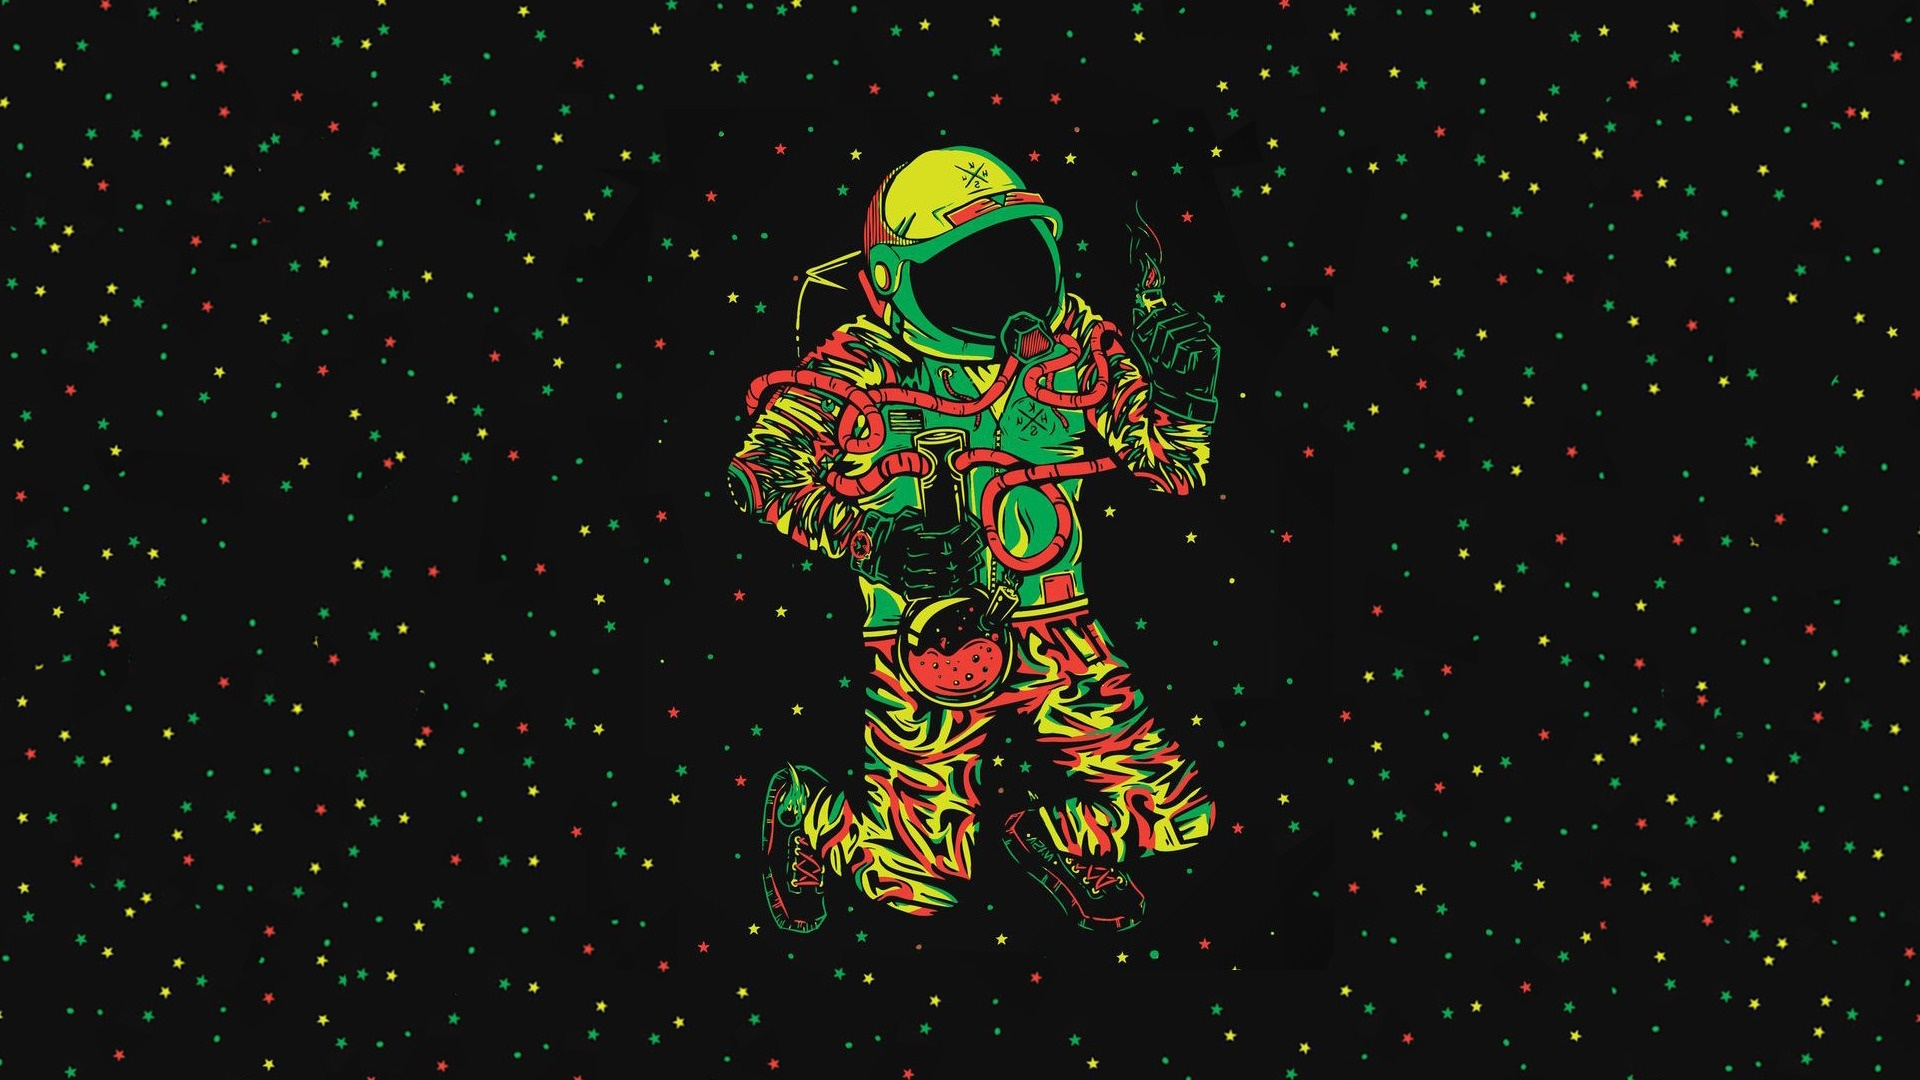 Astronaut Art wallpaper photo hd